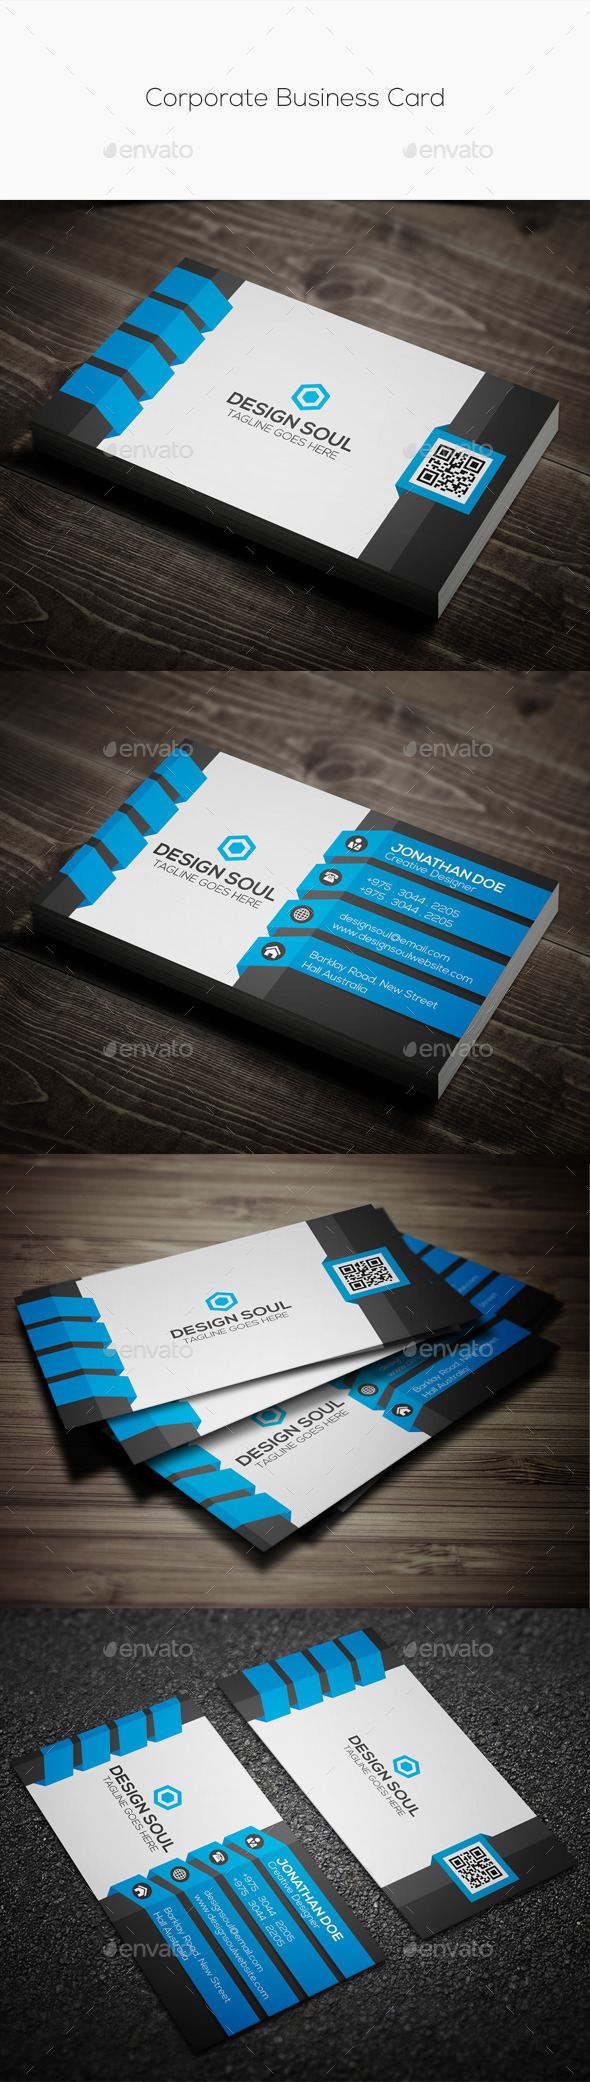 GraphicRiver Corporate Business Card 11403503